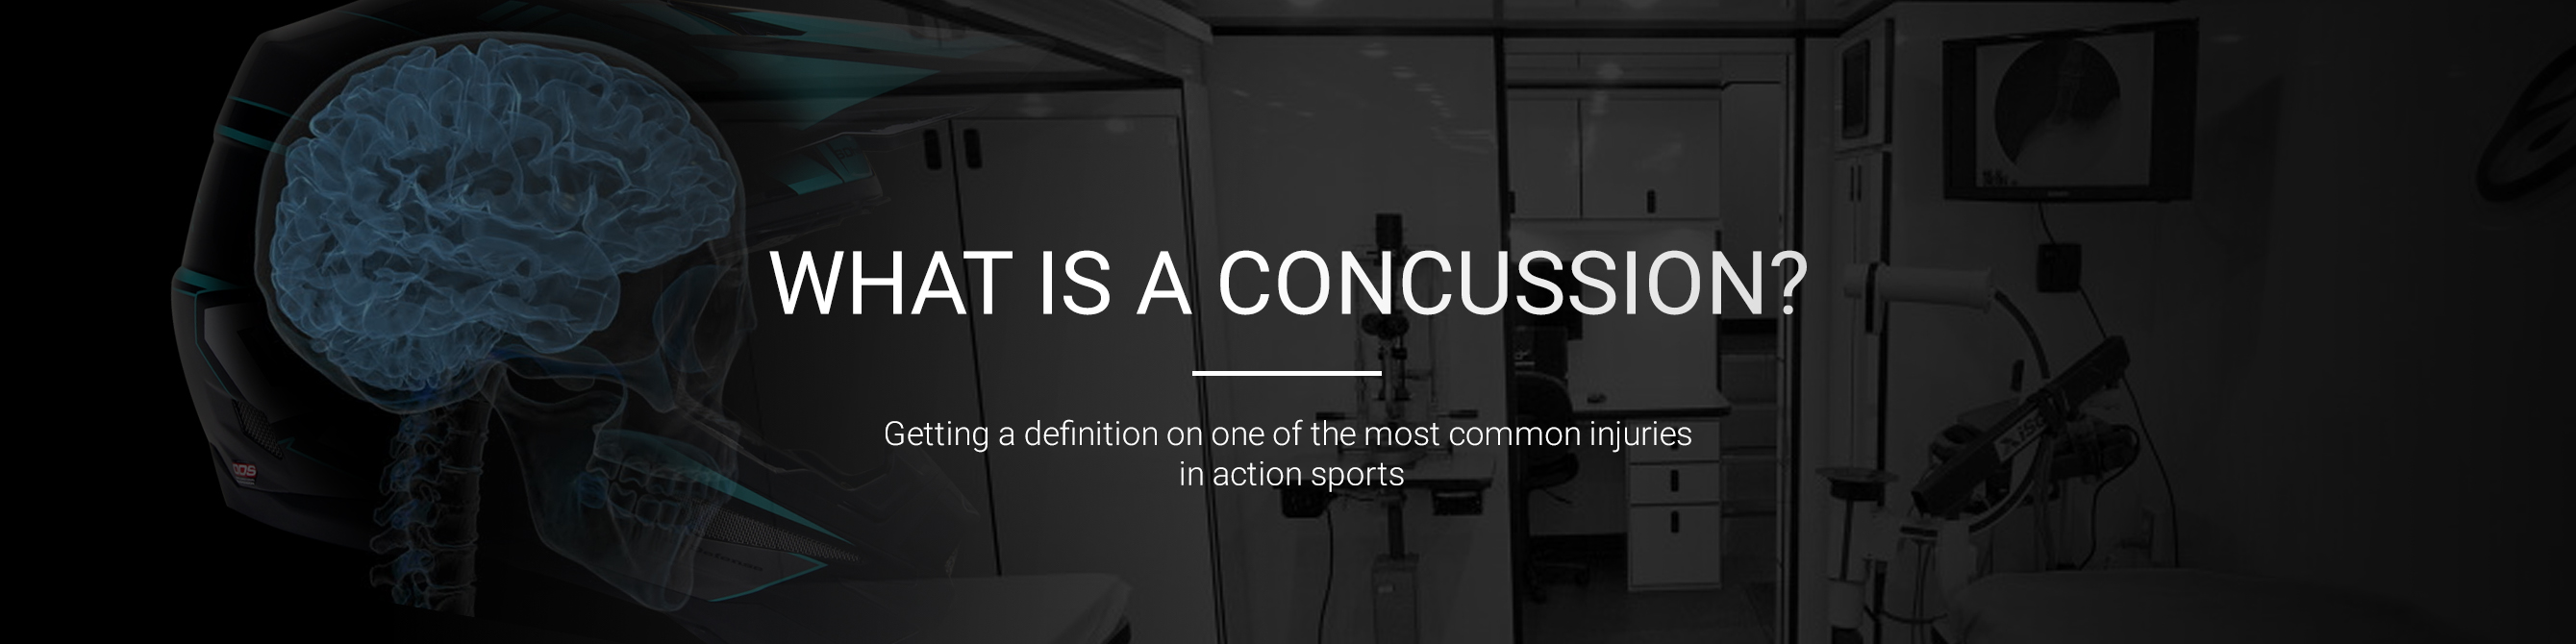 what is a concussion? - 6d helmets